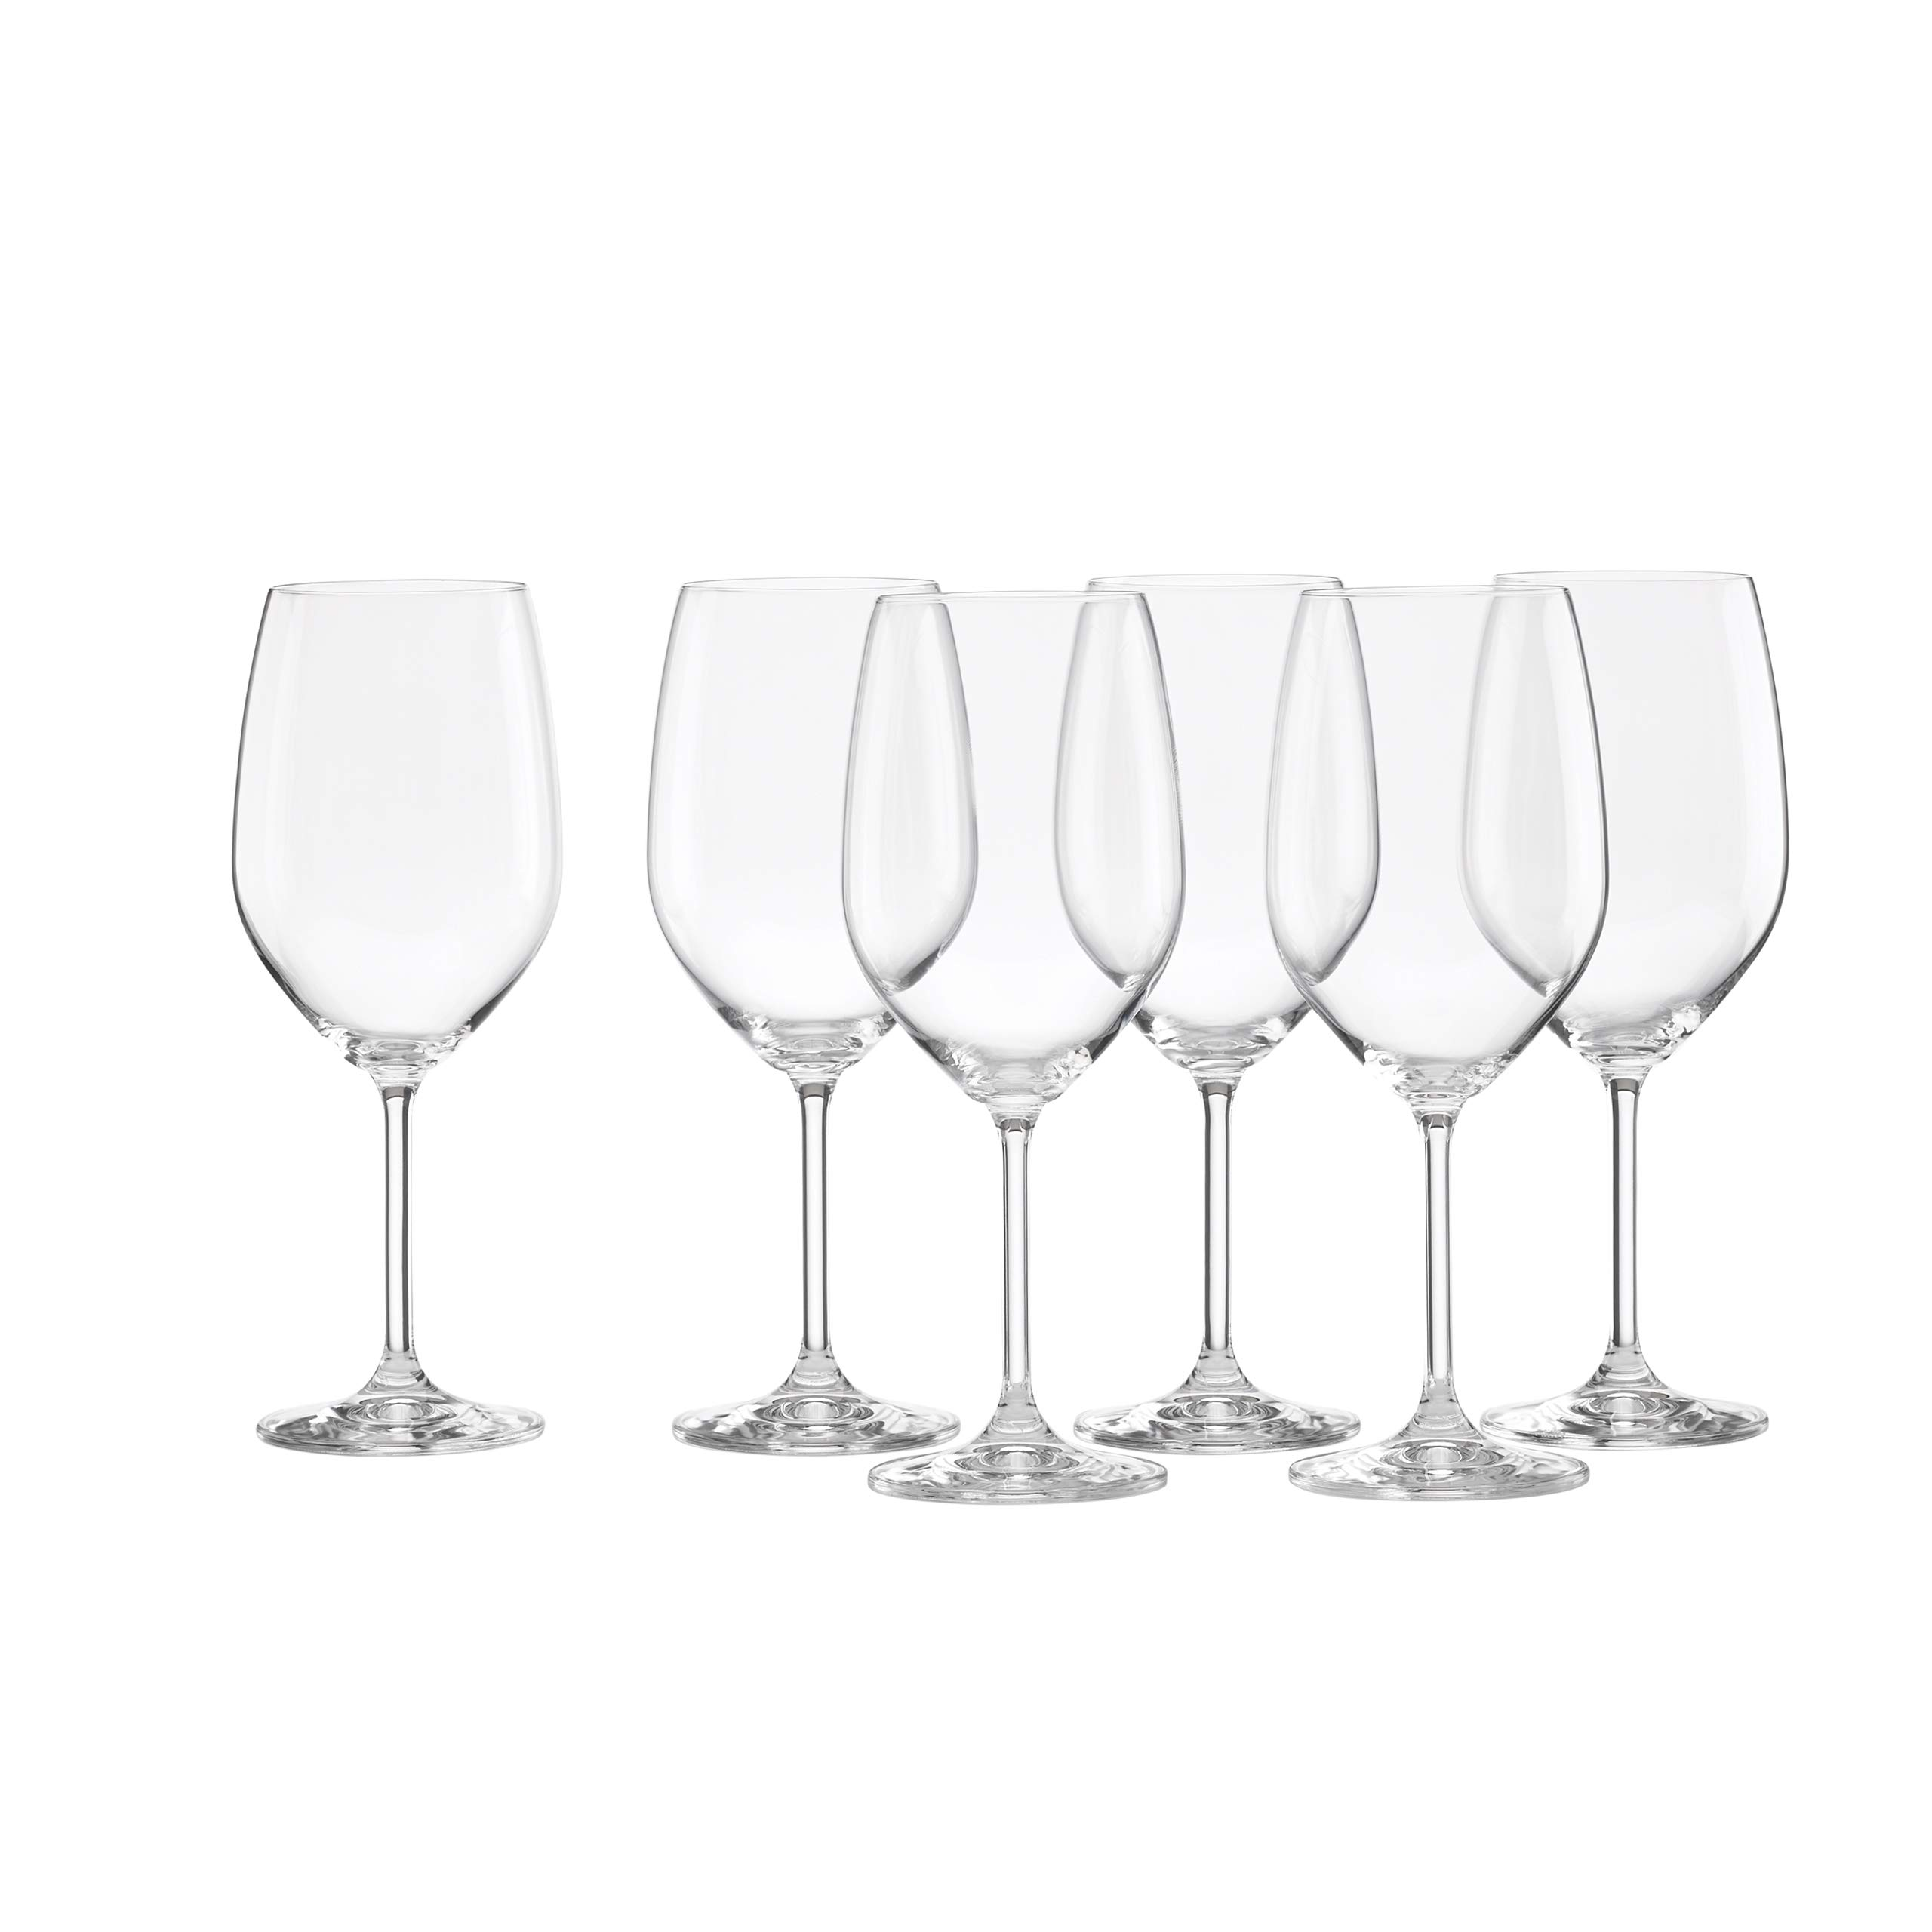 Lenox Tuscany Classics White Wine Glasses, Buy 4, Get 6 by Lenox